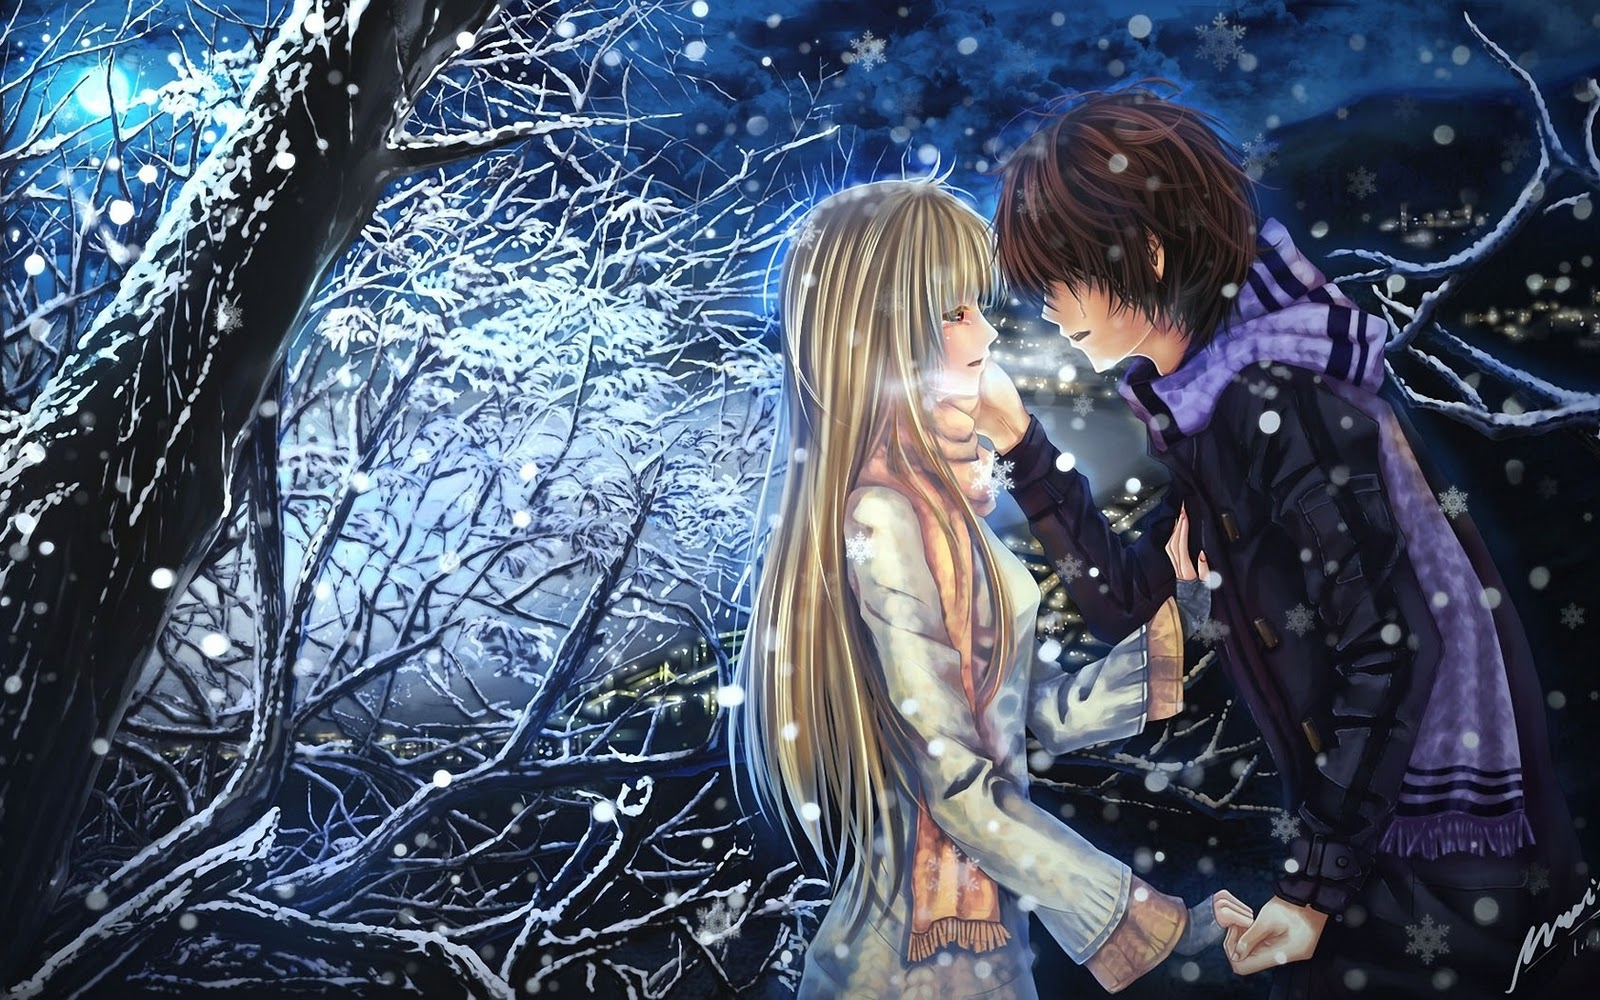 Anime Boy Girl Couple In Love HD Wallpaper